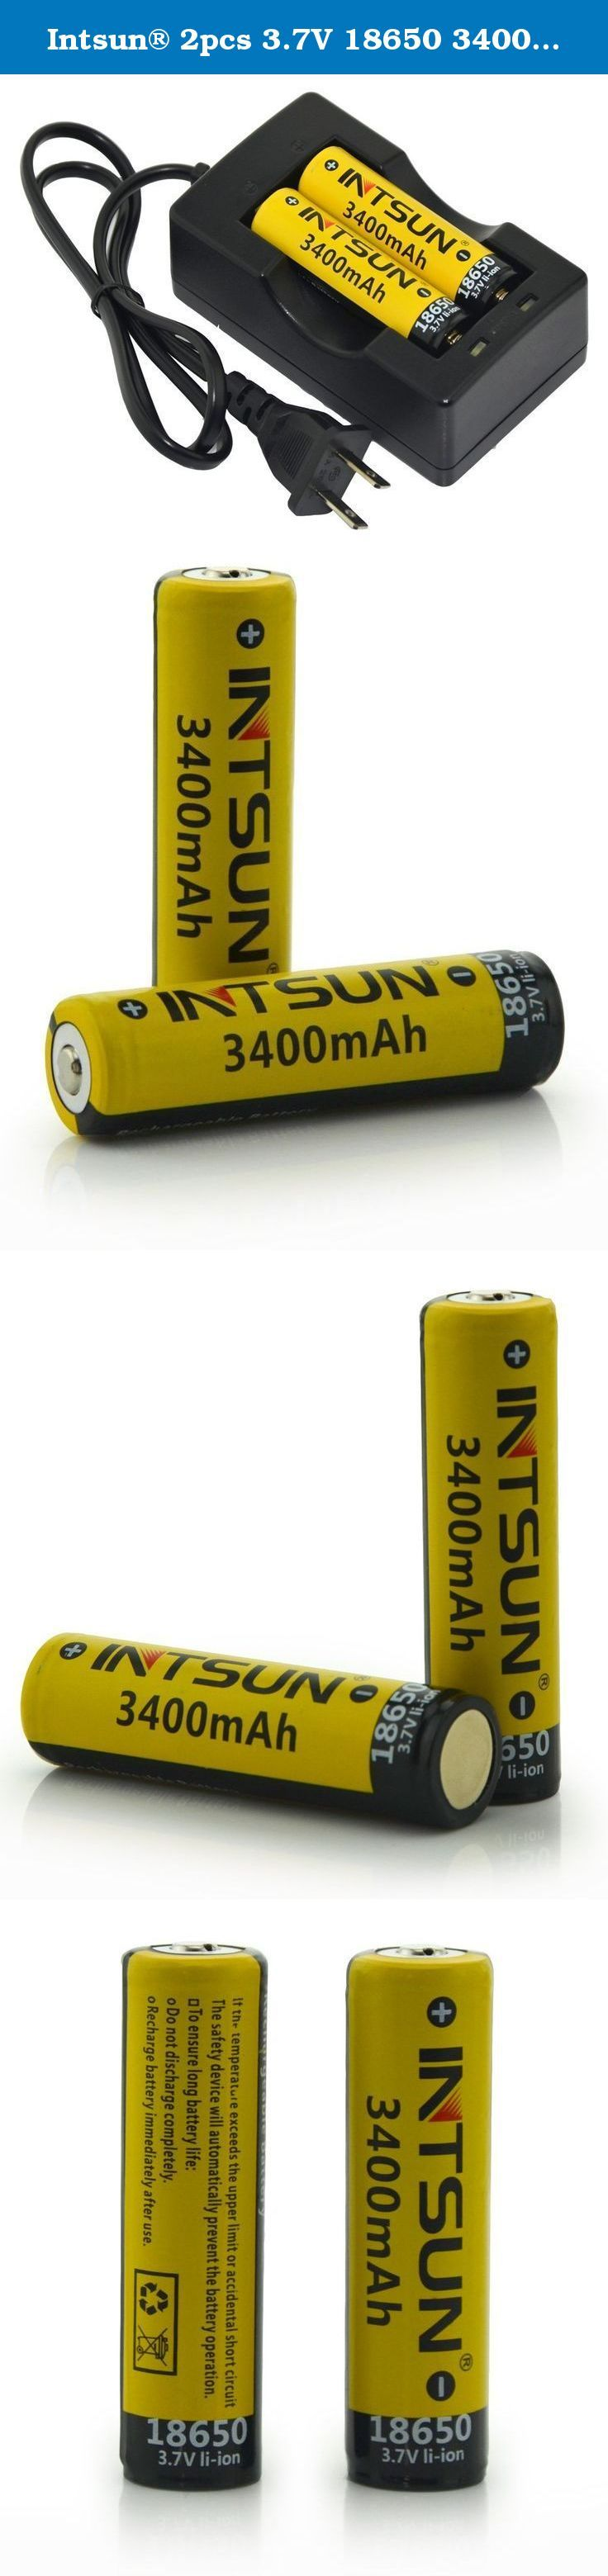 Intsun® 2pcs 3.7V 18650 3400mah Rechargeable Li-ion Battery with PCB and 18650 battery Charger for LED Flashlight, Headlamps, search light lamp, etc. Features: * High quality and durable. * No memory effect, Environmentally friendly. * Provides excellent continuous power sources to your device. * This battery has an extra long life for all your battery powered devices. * With overcharge / discharge protection function that you can use it without worry. * Can be used in laser pointer, Led...